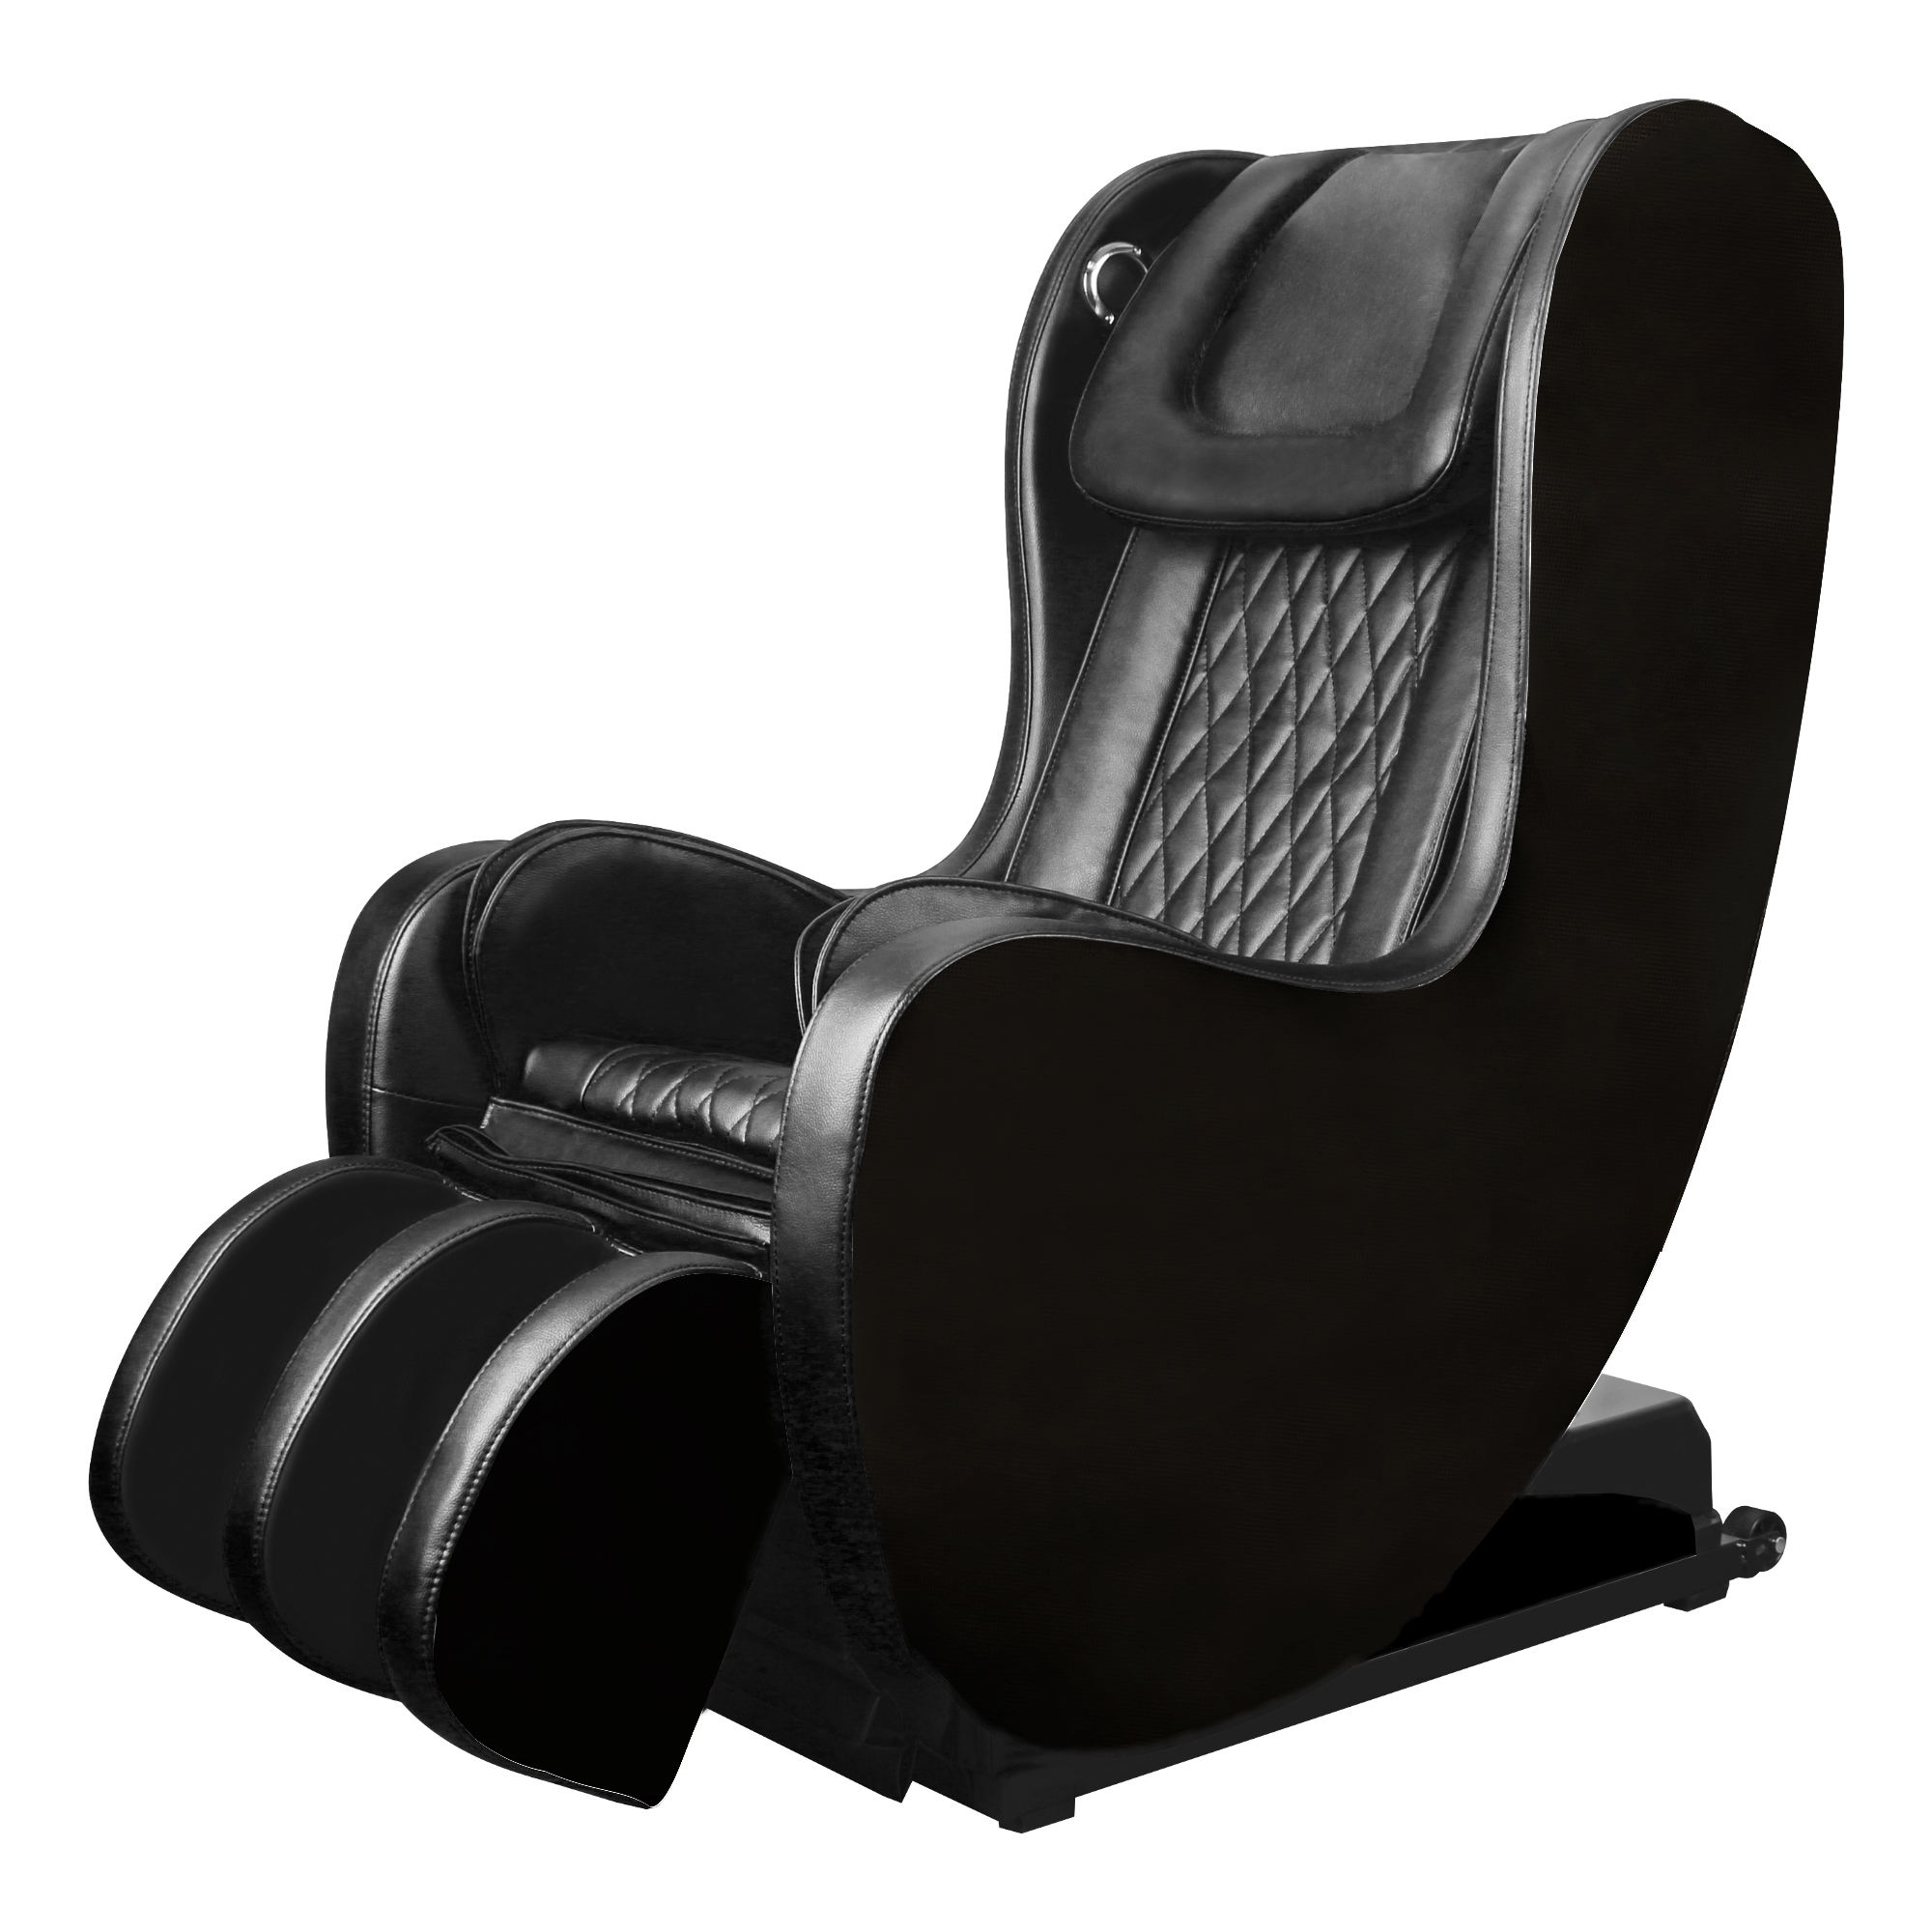 YIJIE Perfect living room beauty health manual massage chair in dragon mart dubai